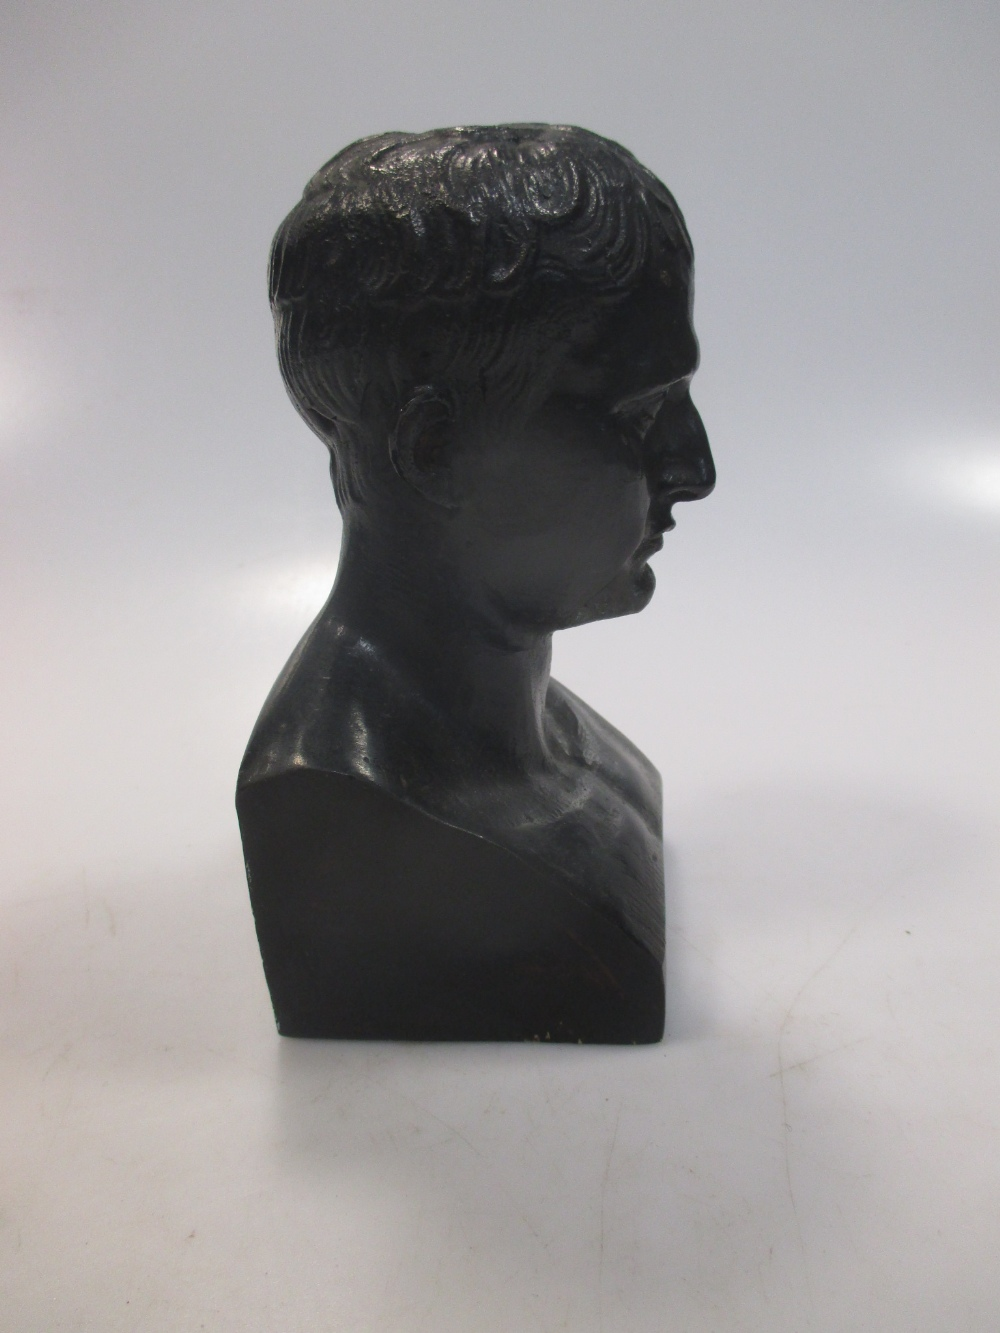 Lot 219 - After Canova, a bronze bust of Napolean, 14cm high